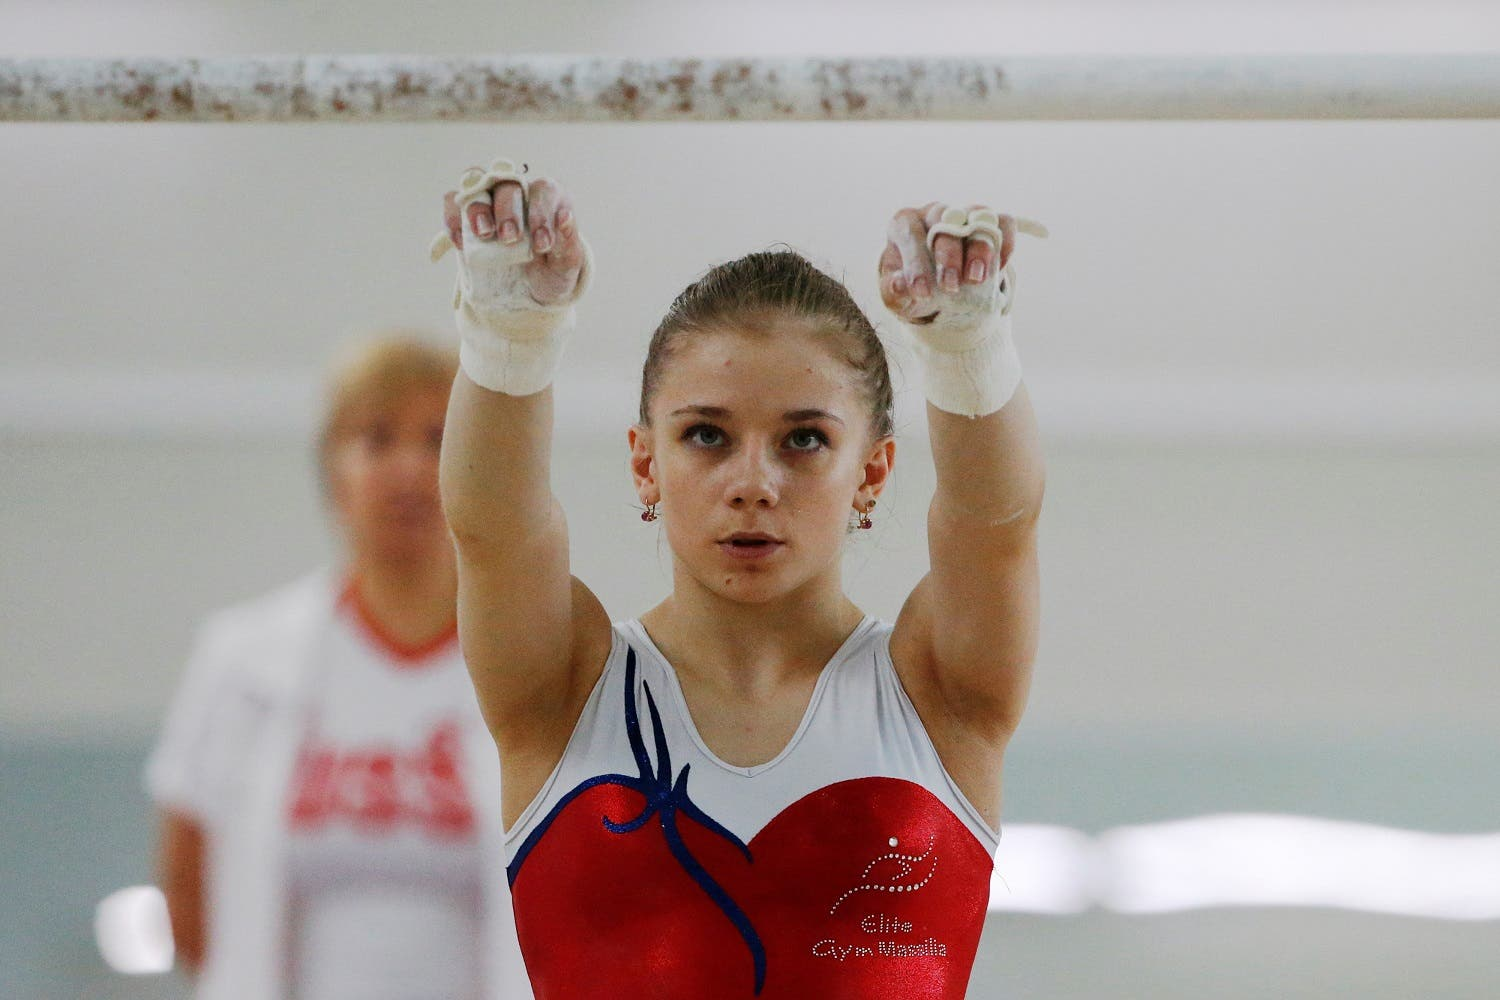 Member of the women's gymnastics Russian Olympic team Evgeniya Shelgunova attends a training session at the Ozero Krugloe (Round Lake) training centre outside Moscow, Russia, July 21, 2016. REUTERS